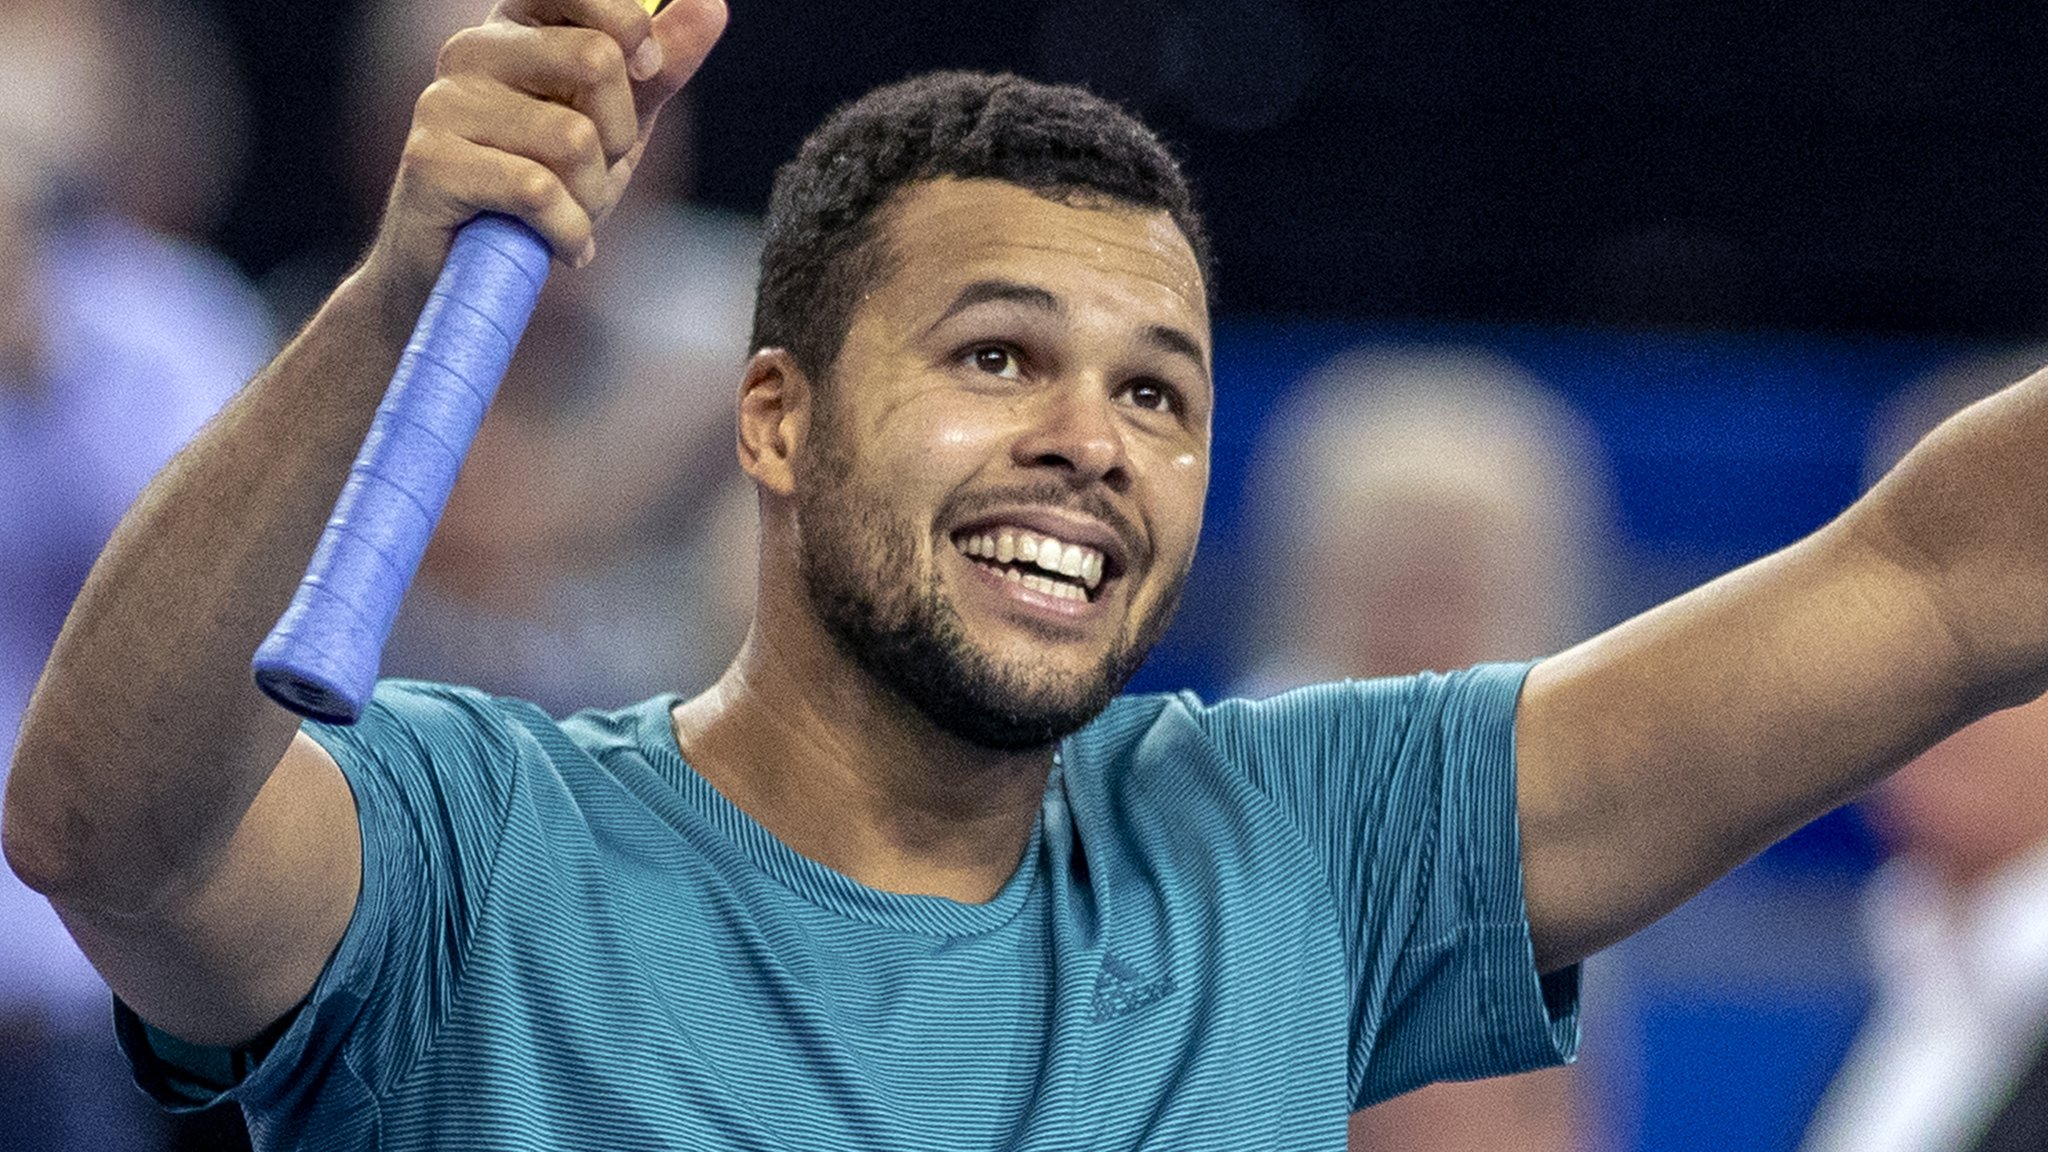 Jo-Wilfried Tsonga beats Pierre-Hugues Herbert to win first title since 2017